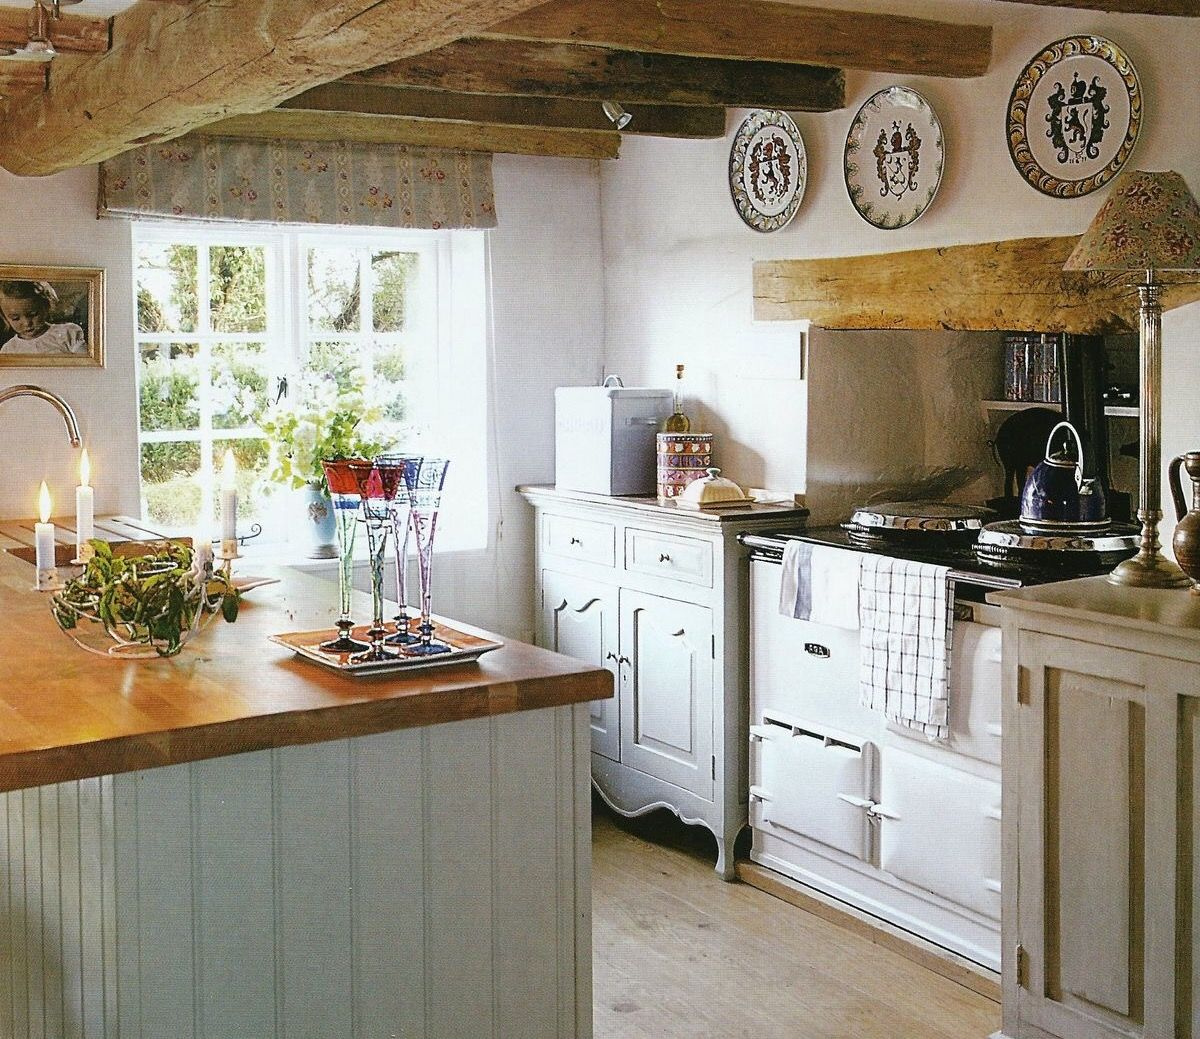 Pin By Marianne Nygaard Larsen On English Country Cottage